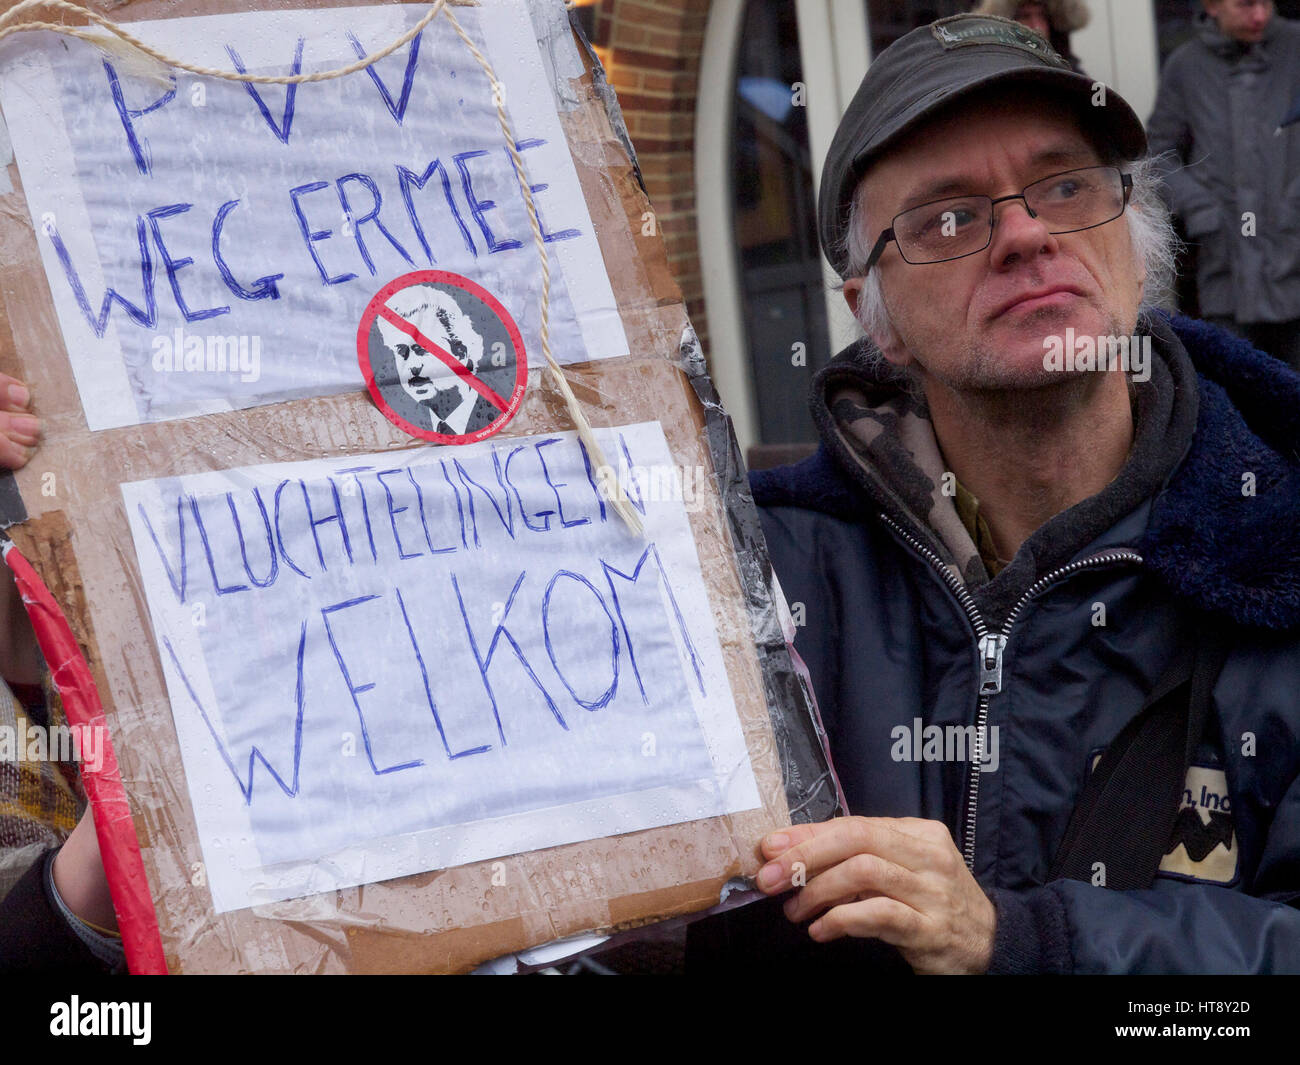 anti PVV Geert Wilders protester in Breda, the Netherlands - Stock Image